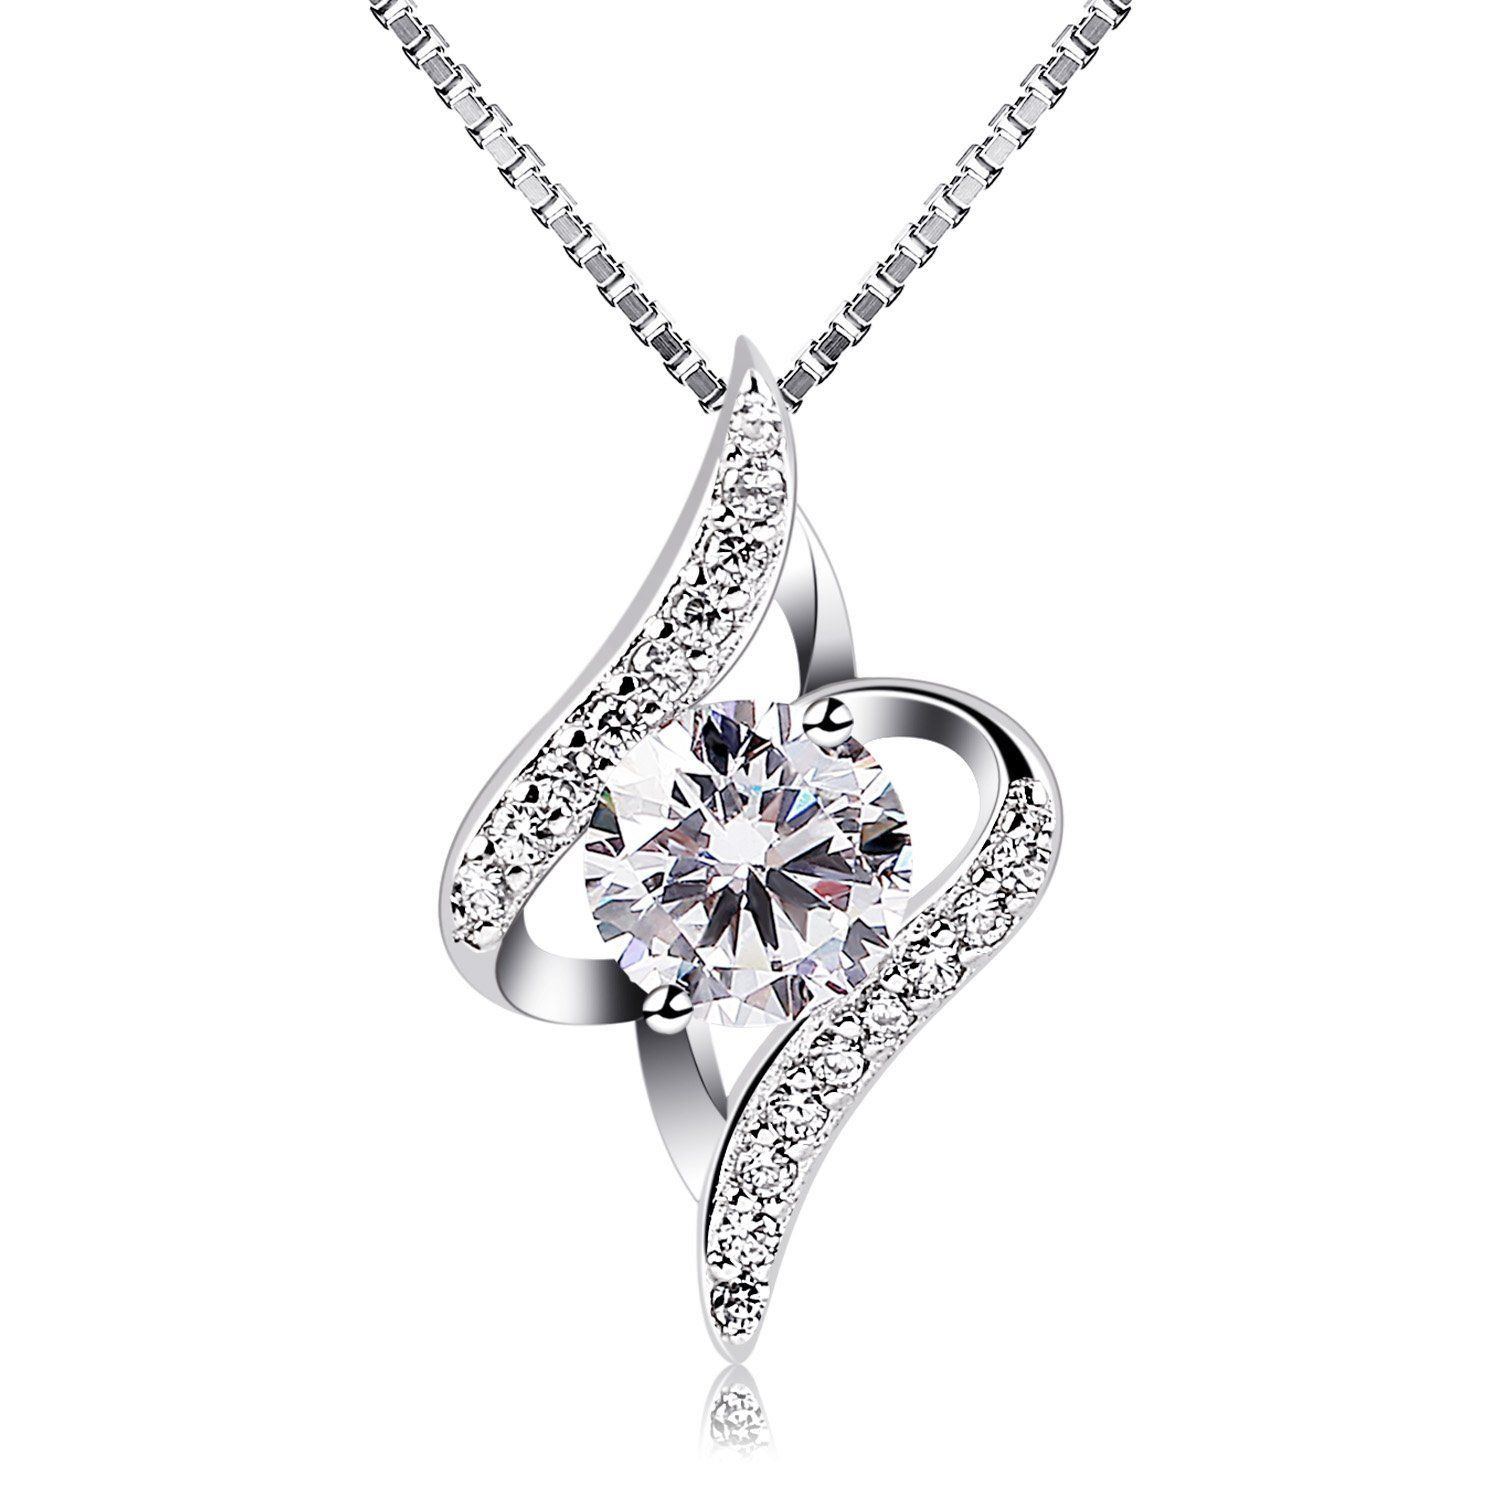 B.Catcher Necklaces for Women, Silver Necklace 925 Sterling Pendant, Flower Necklace Jewellery, 18inch Box Chain